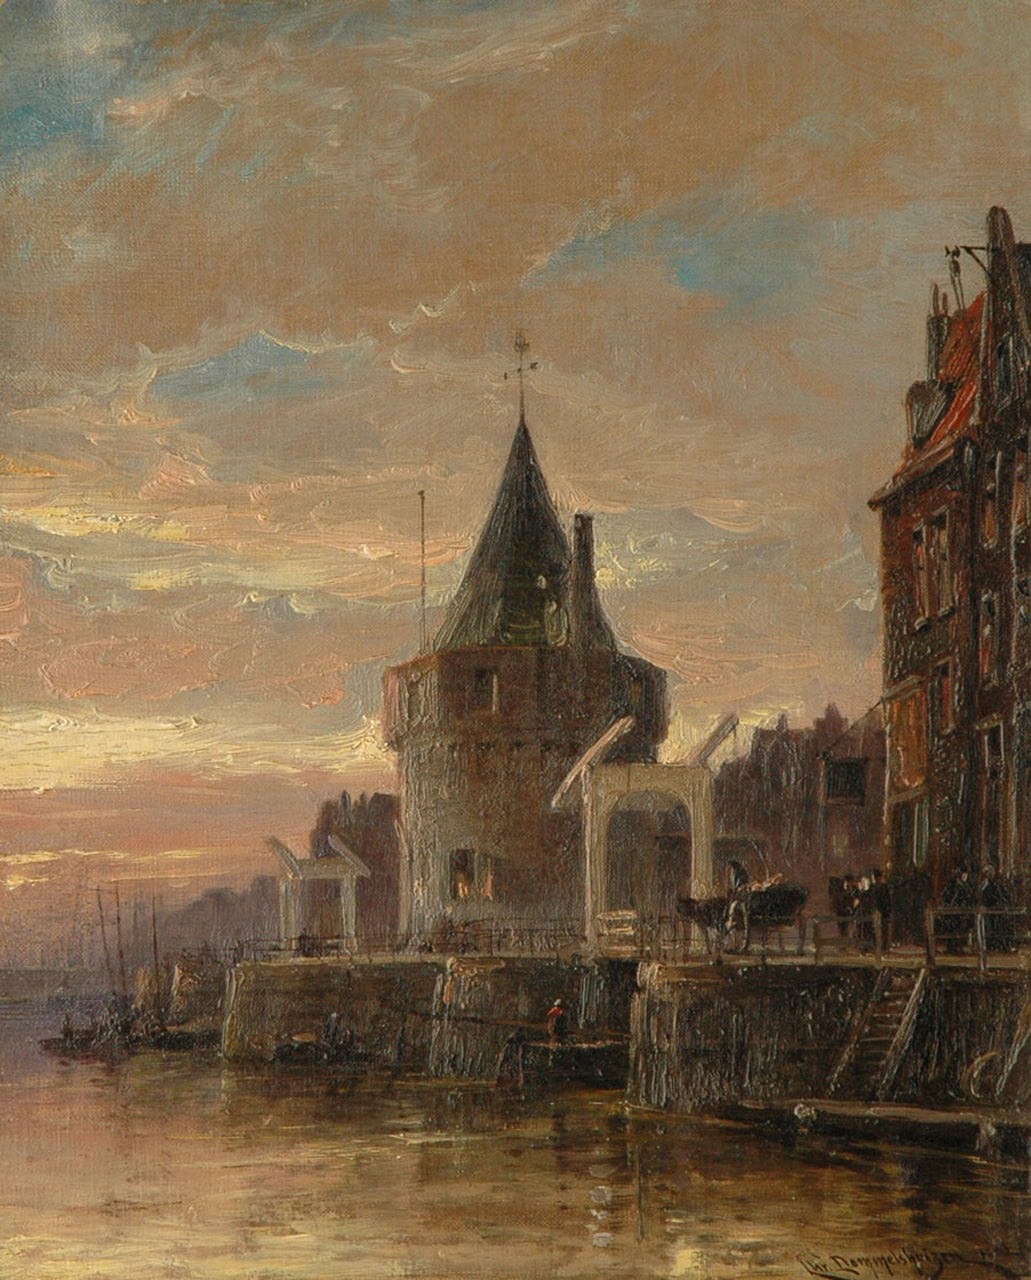 Dommelshuizen C.C.  | Cornelis Christiaan Dommelshuizen, The Schreierstoren in Amsterdam, oil on canvas 38.5 x 31.0 cm, signed l.r. and dated 1902